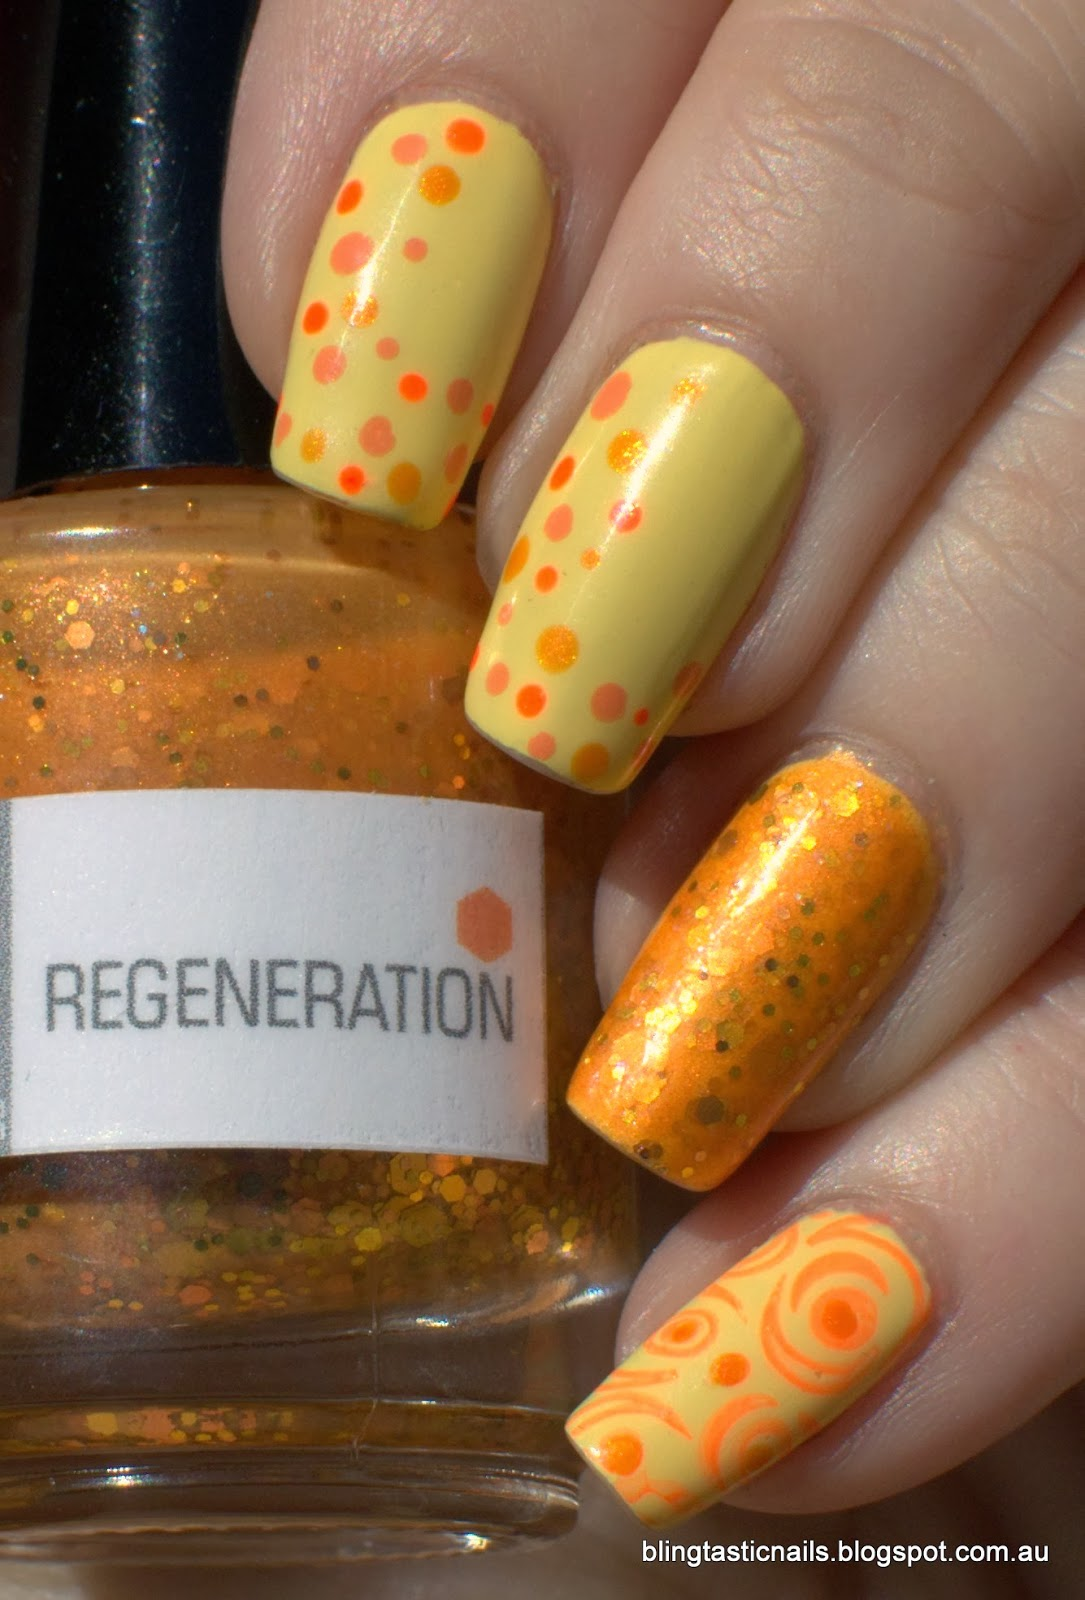 China Glaze Lemon Fizz with NerdLacquer Regeneration accent and dotting and stamping